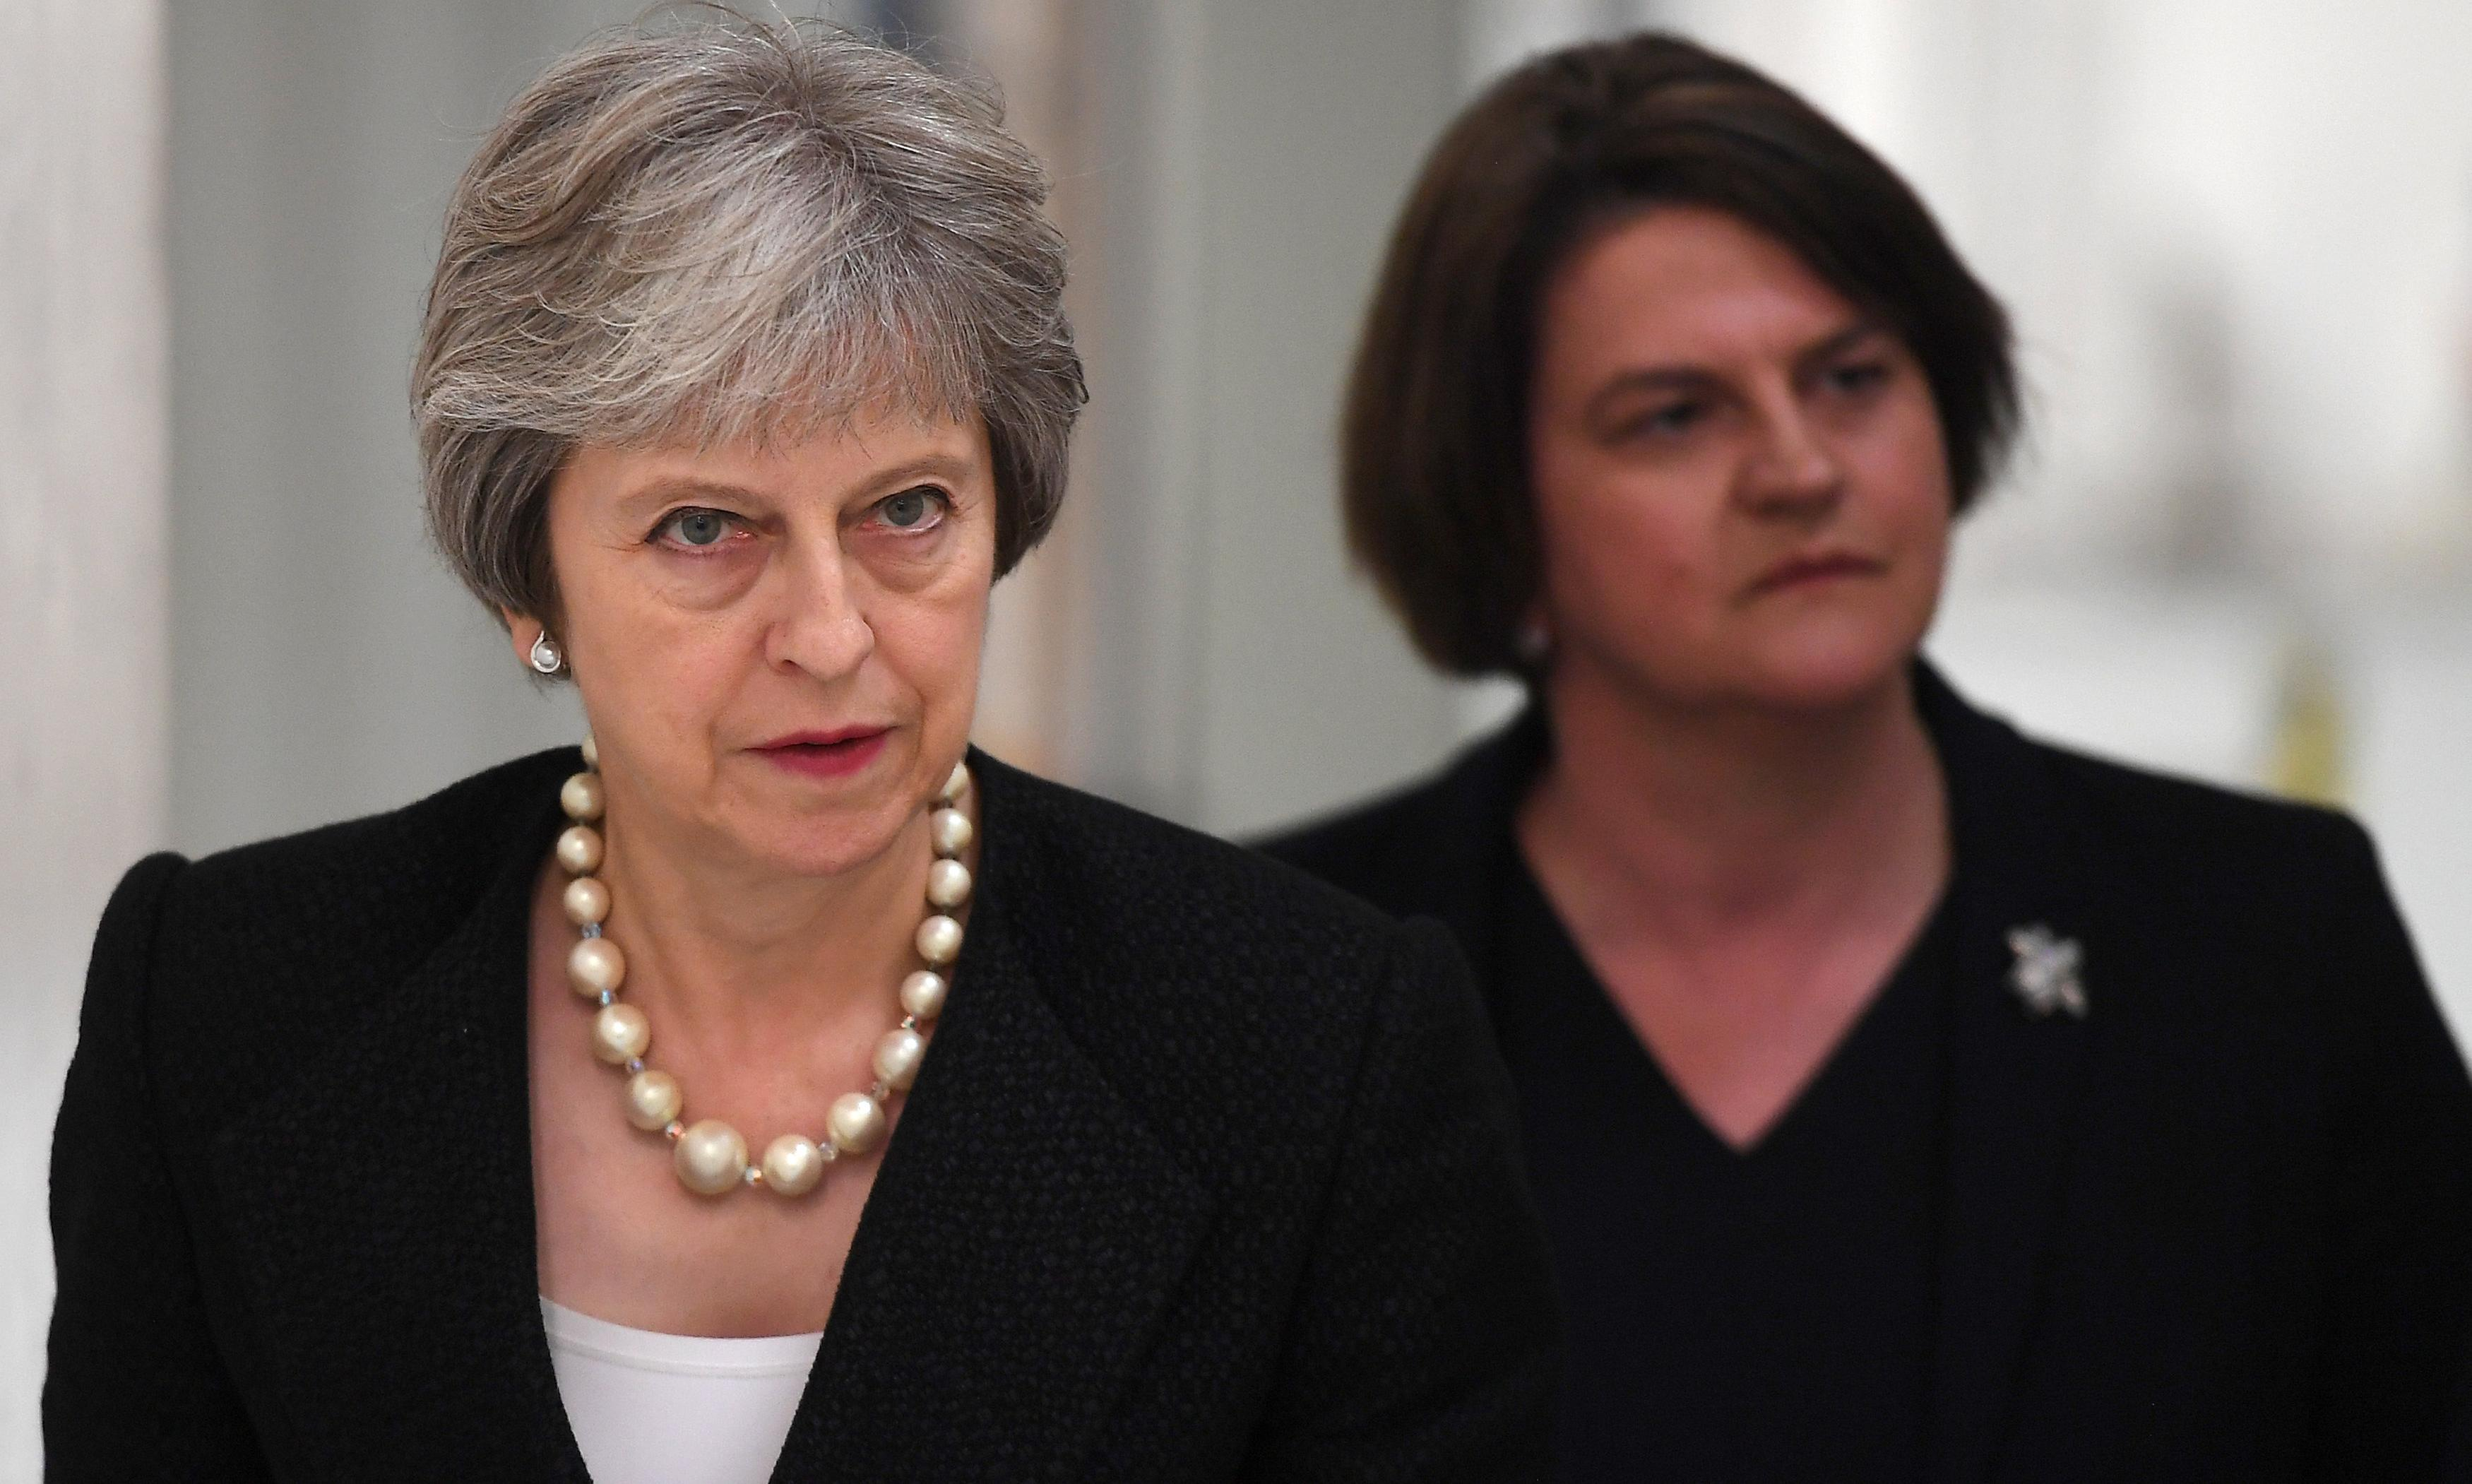 Can Theresa May survive calling the DUP's bluff on Brexit?